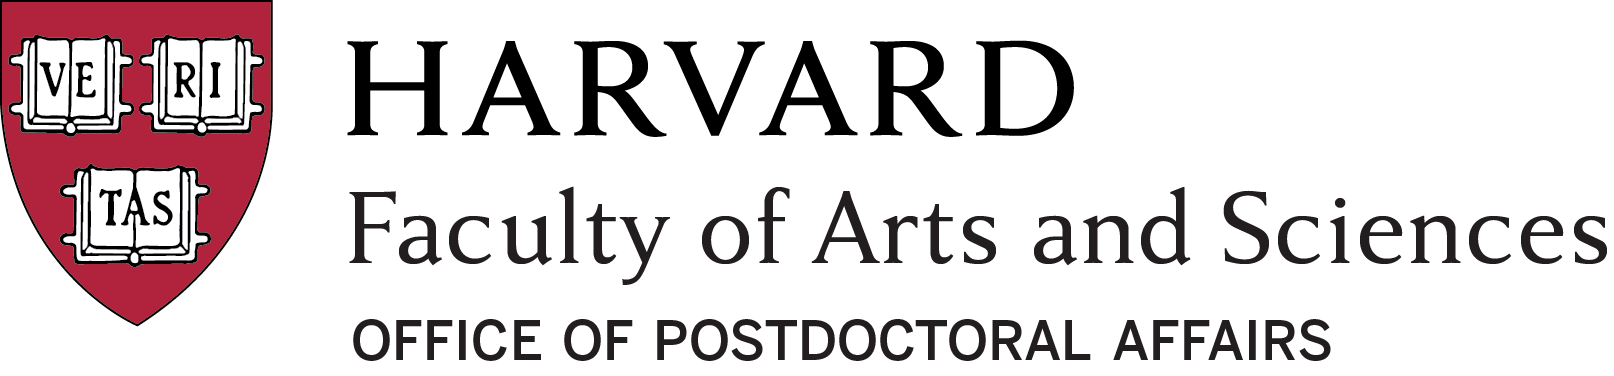 FAS Office of Postdoctoral Affairs